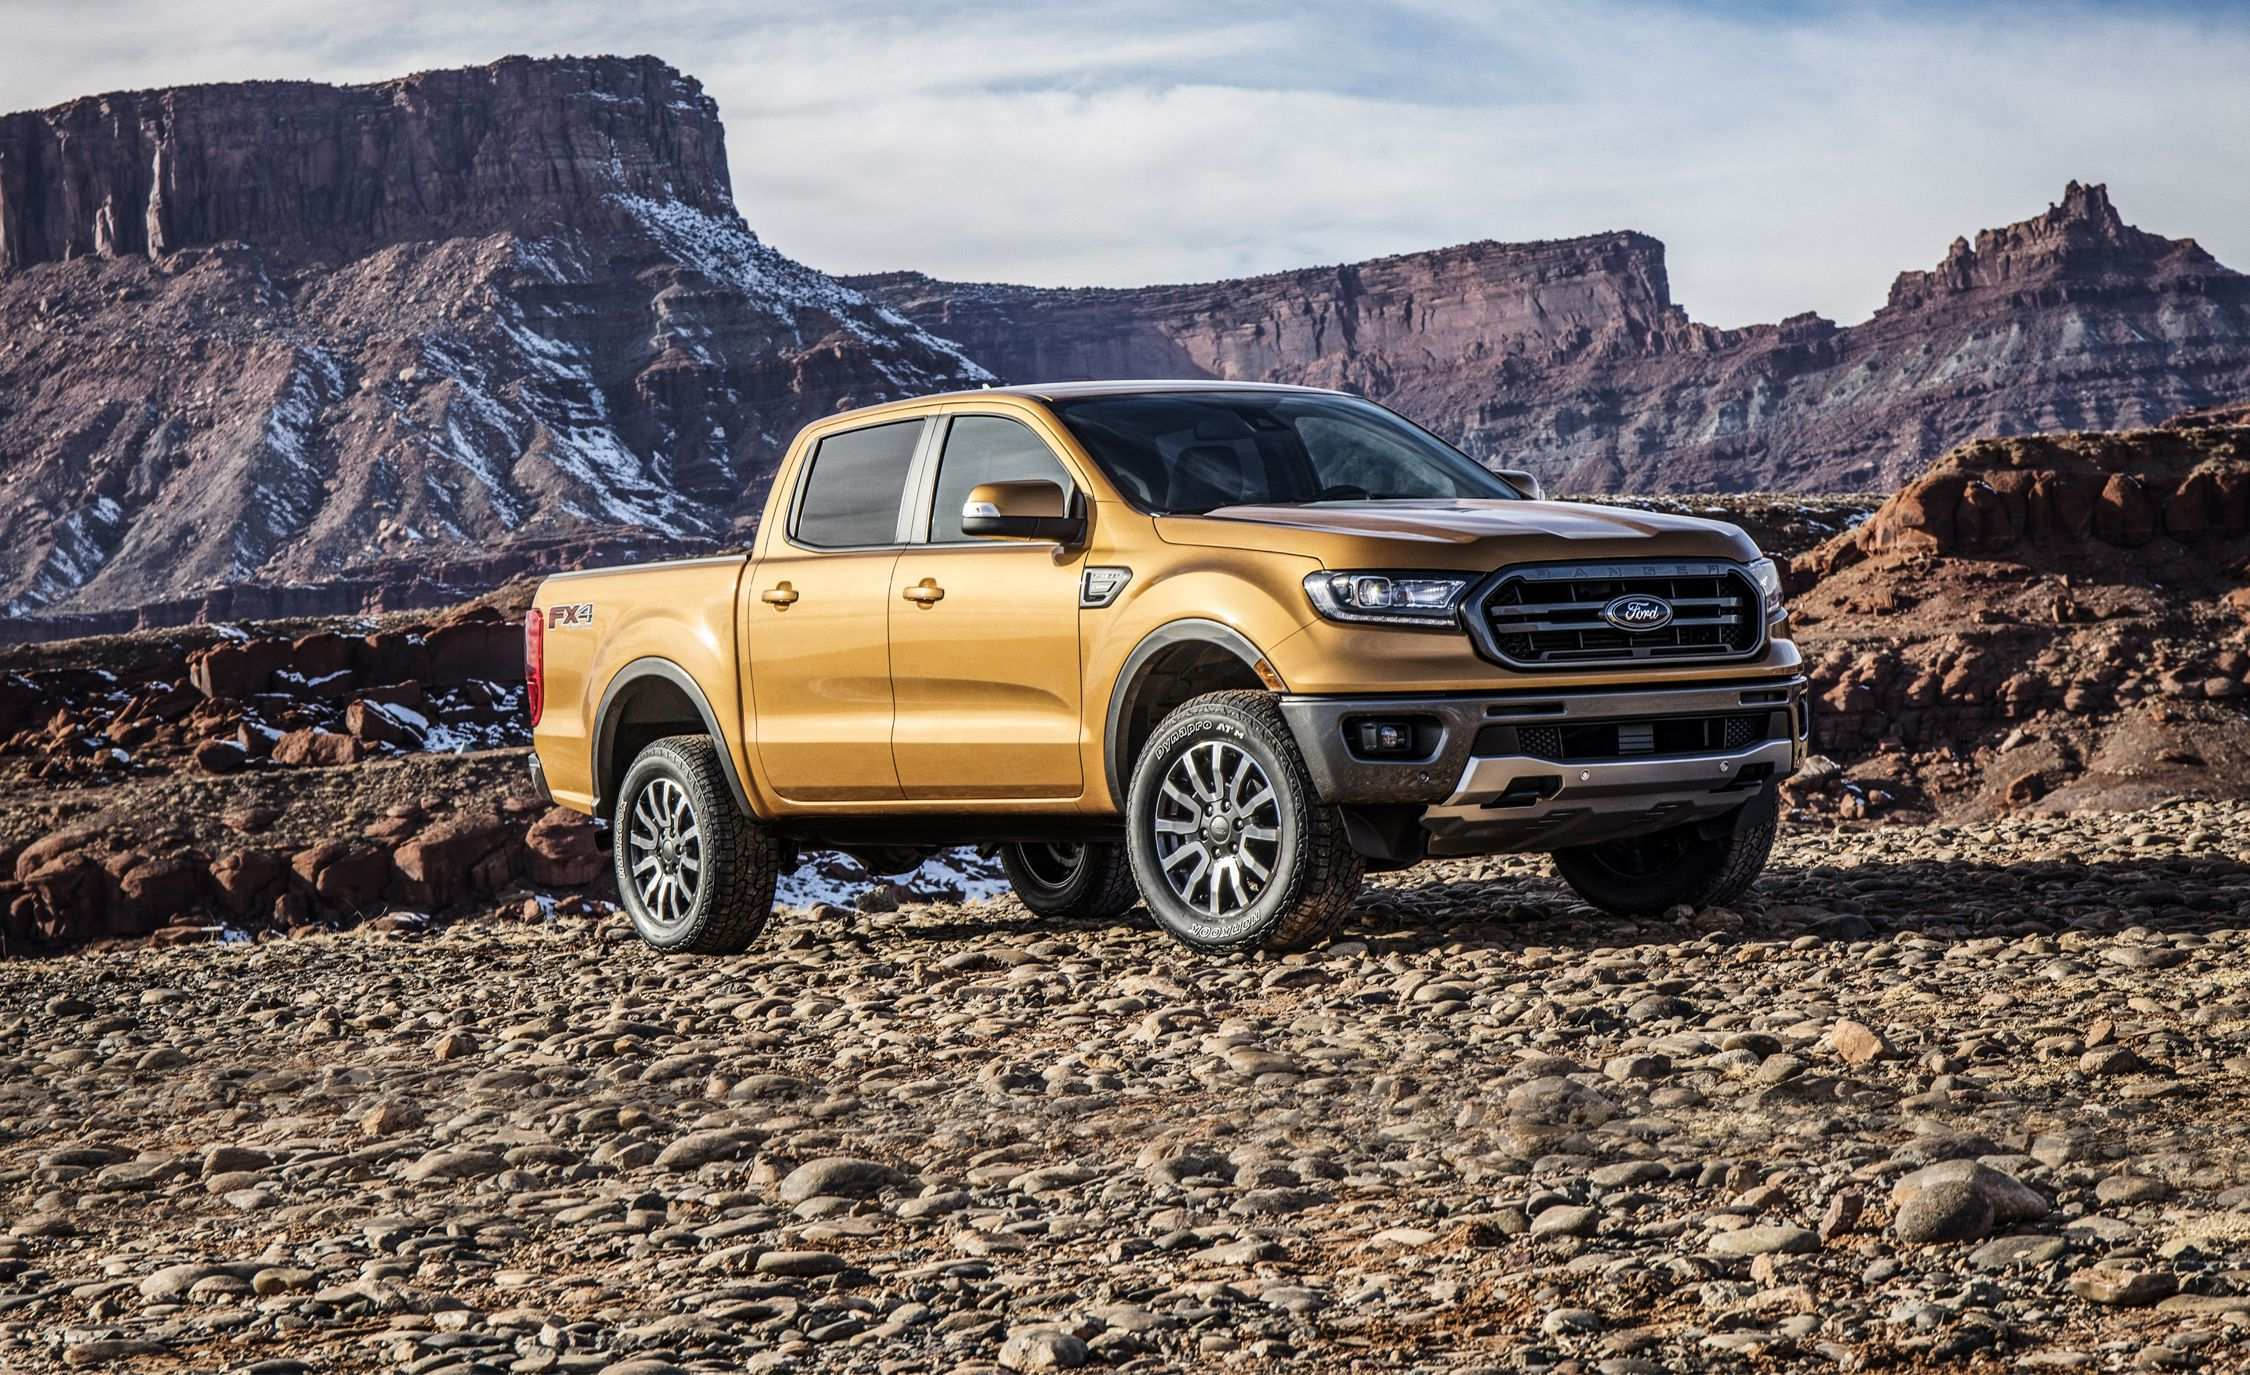 33 Gallery of 2019 Ford Ranger Aluminum New Review by 2019 Ford Ranger Aluminum